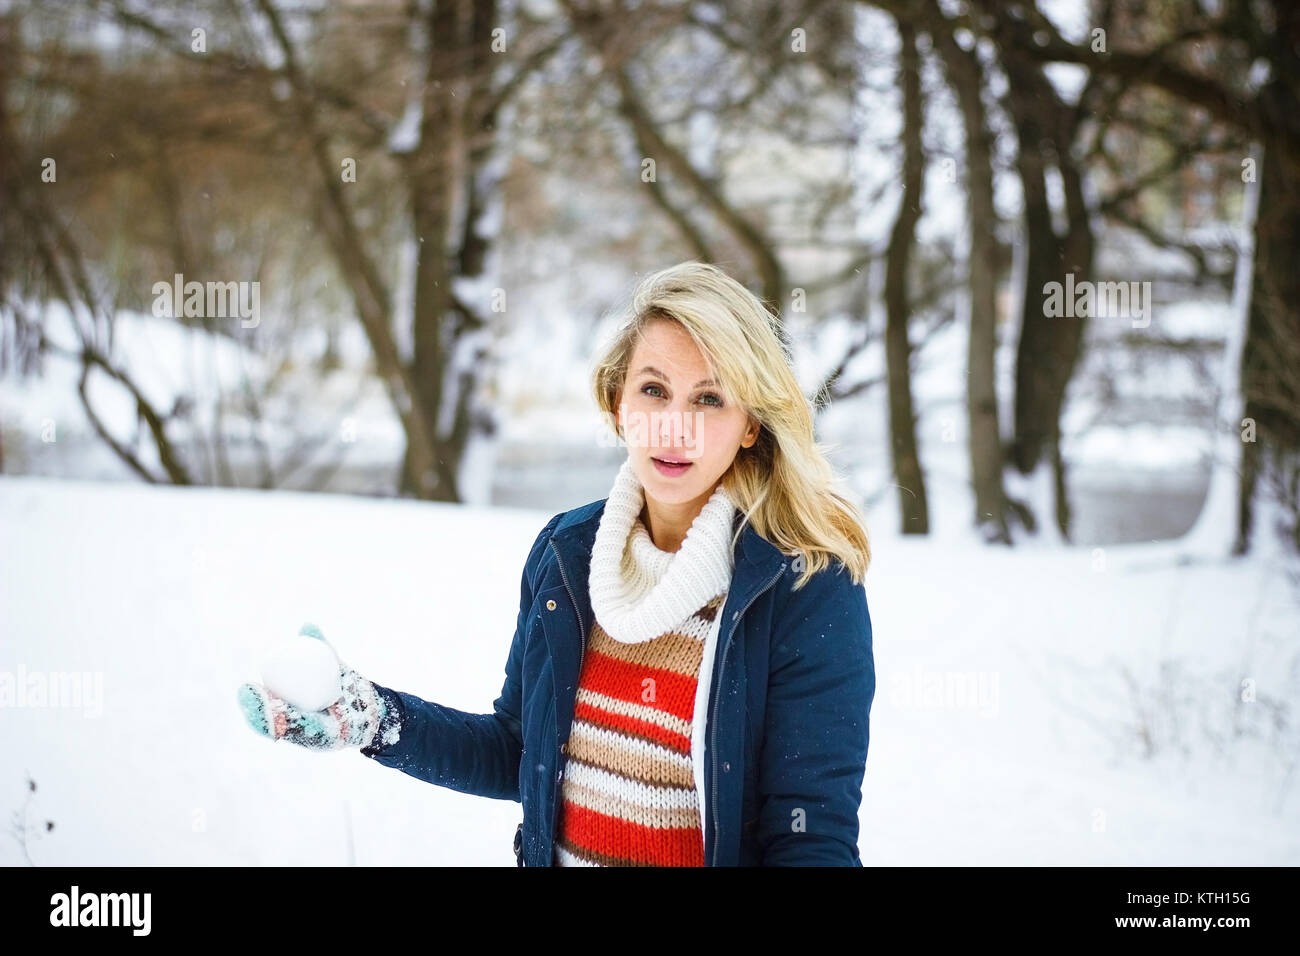 Winter girl play snowballs - Stock Image